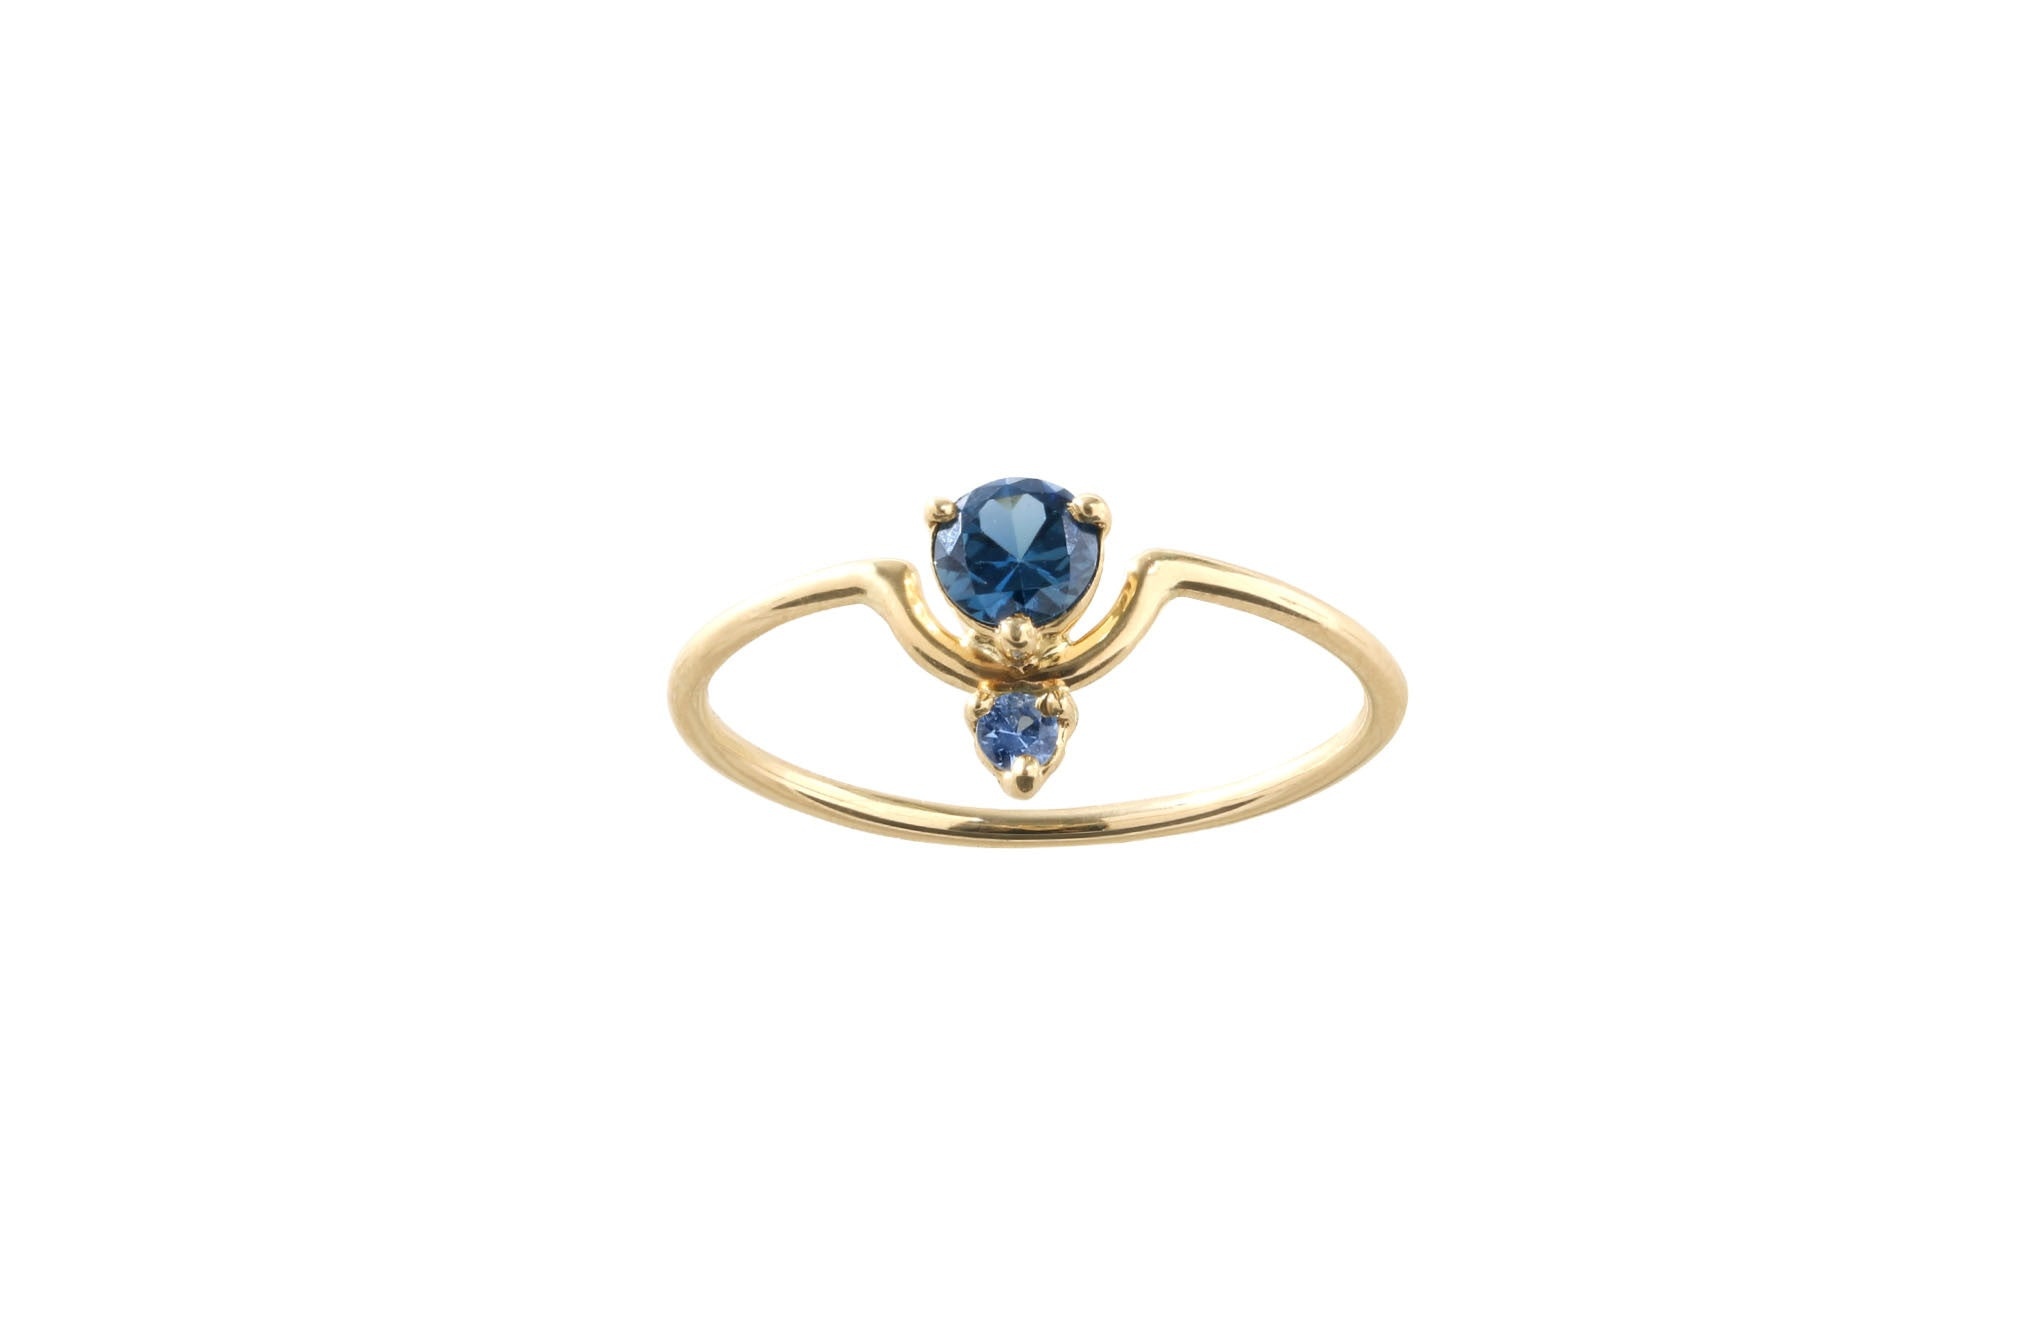 One of a Kind Small Nestled Dark and Light Blue Sapphire Ring